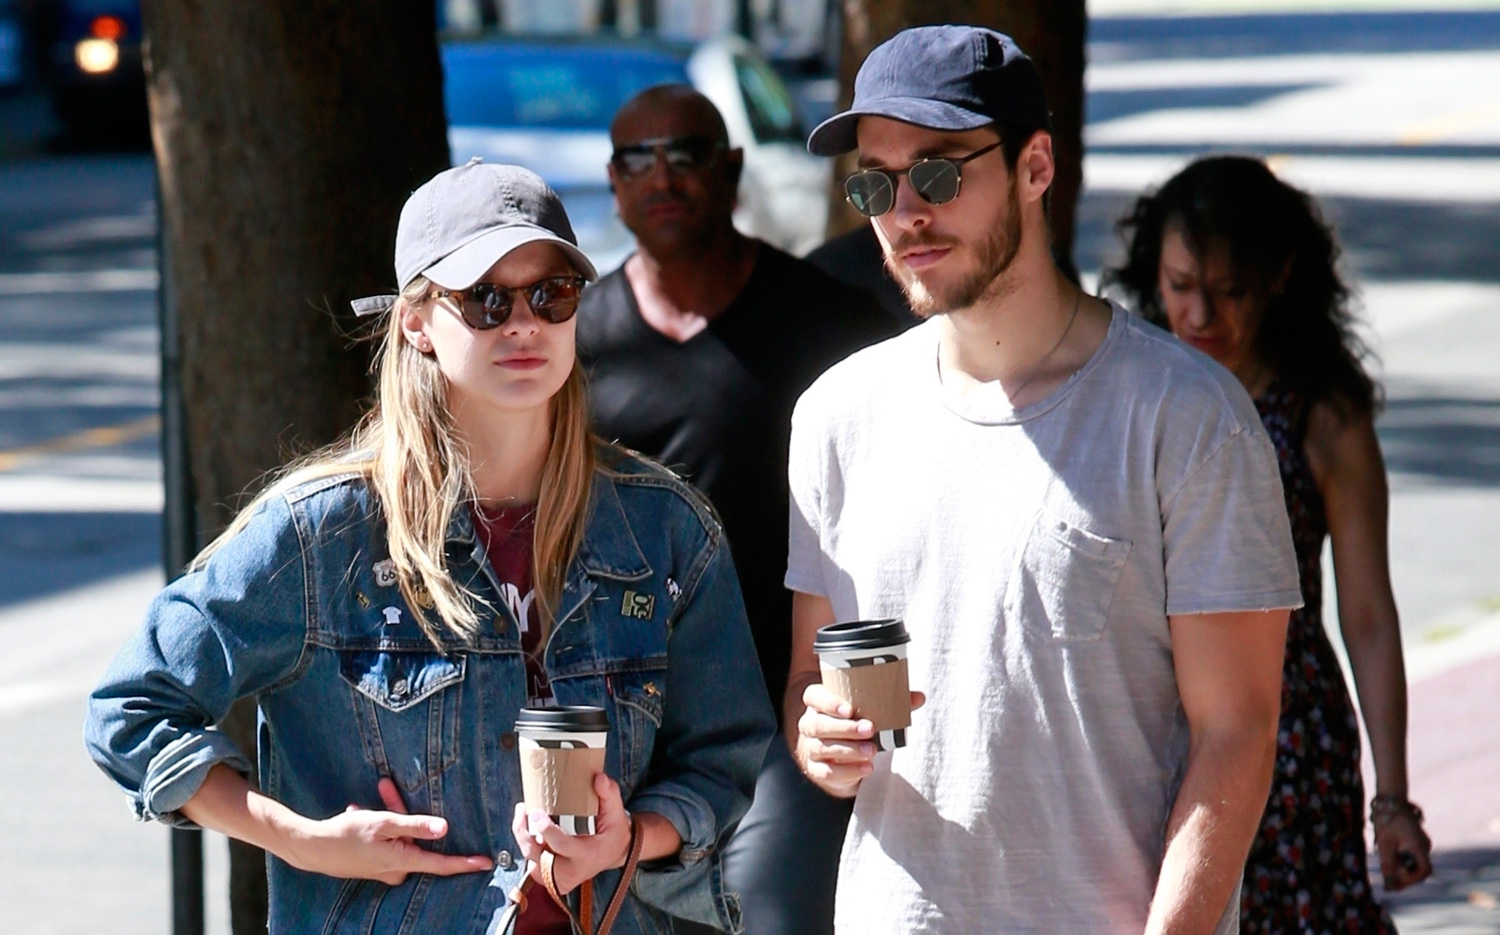 Melissa Benoist and her current boyfriend Chris Wood